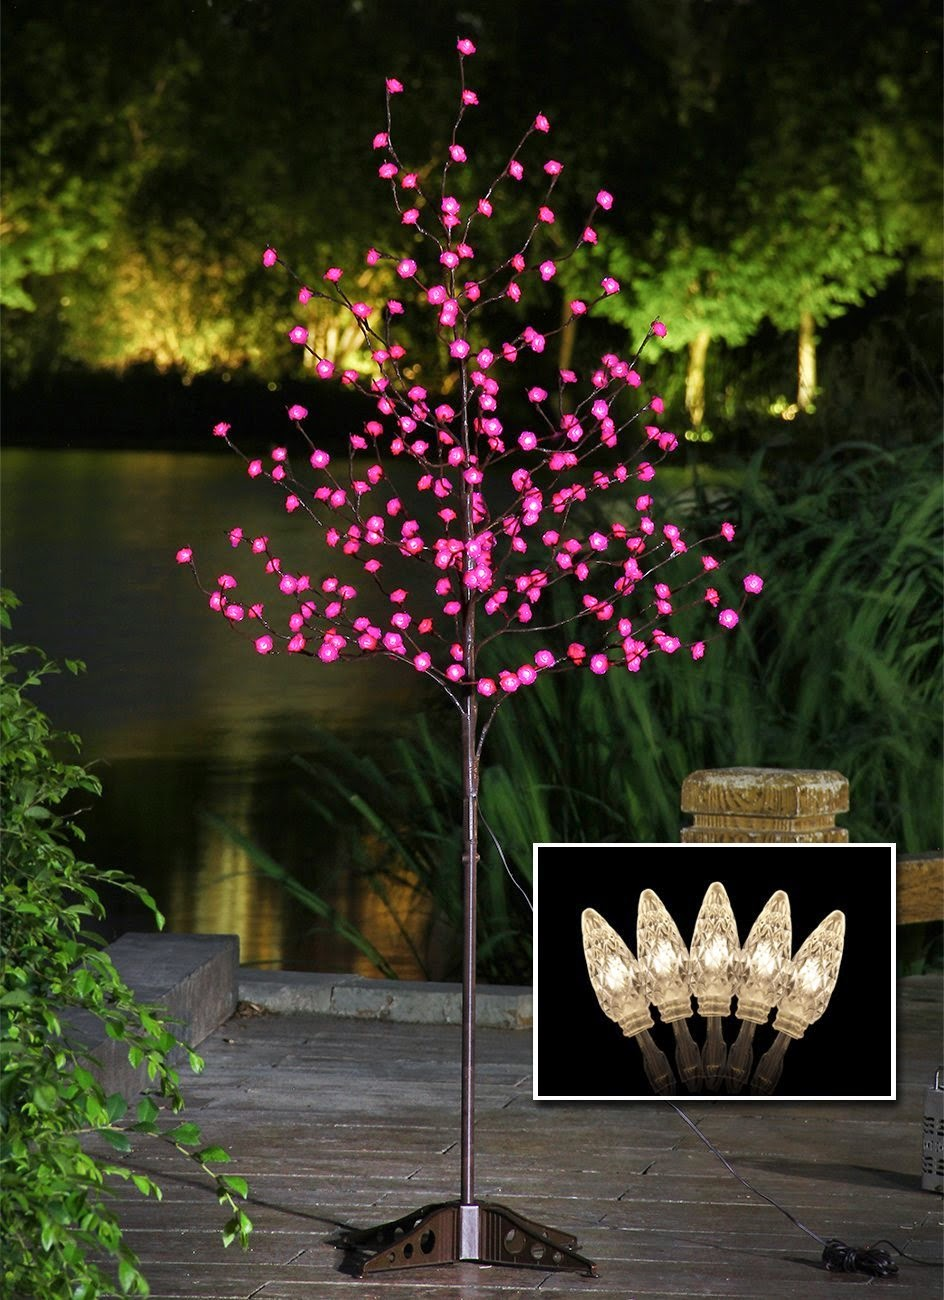 set romantic mood with decorative lights on valentines day - Outdoor Decorative Lights